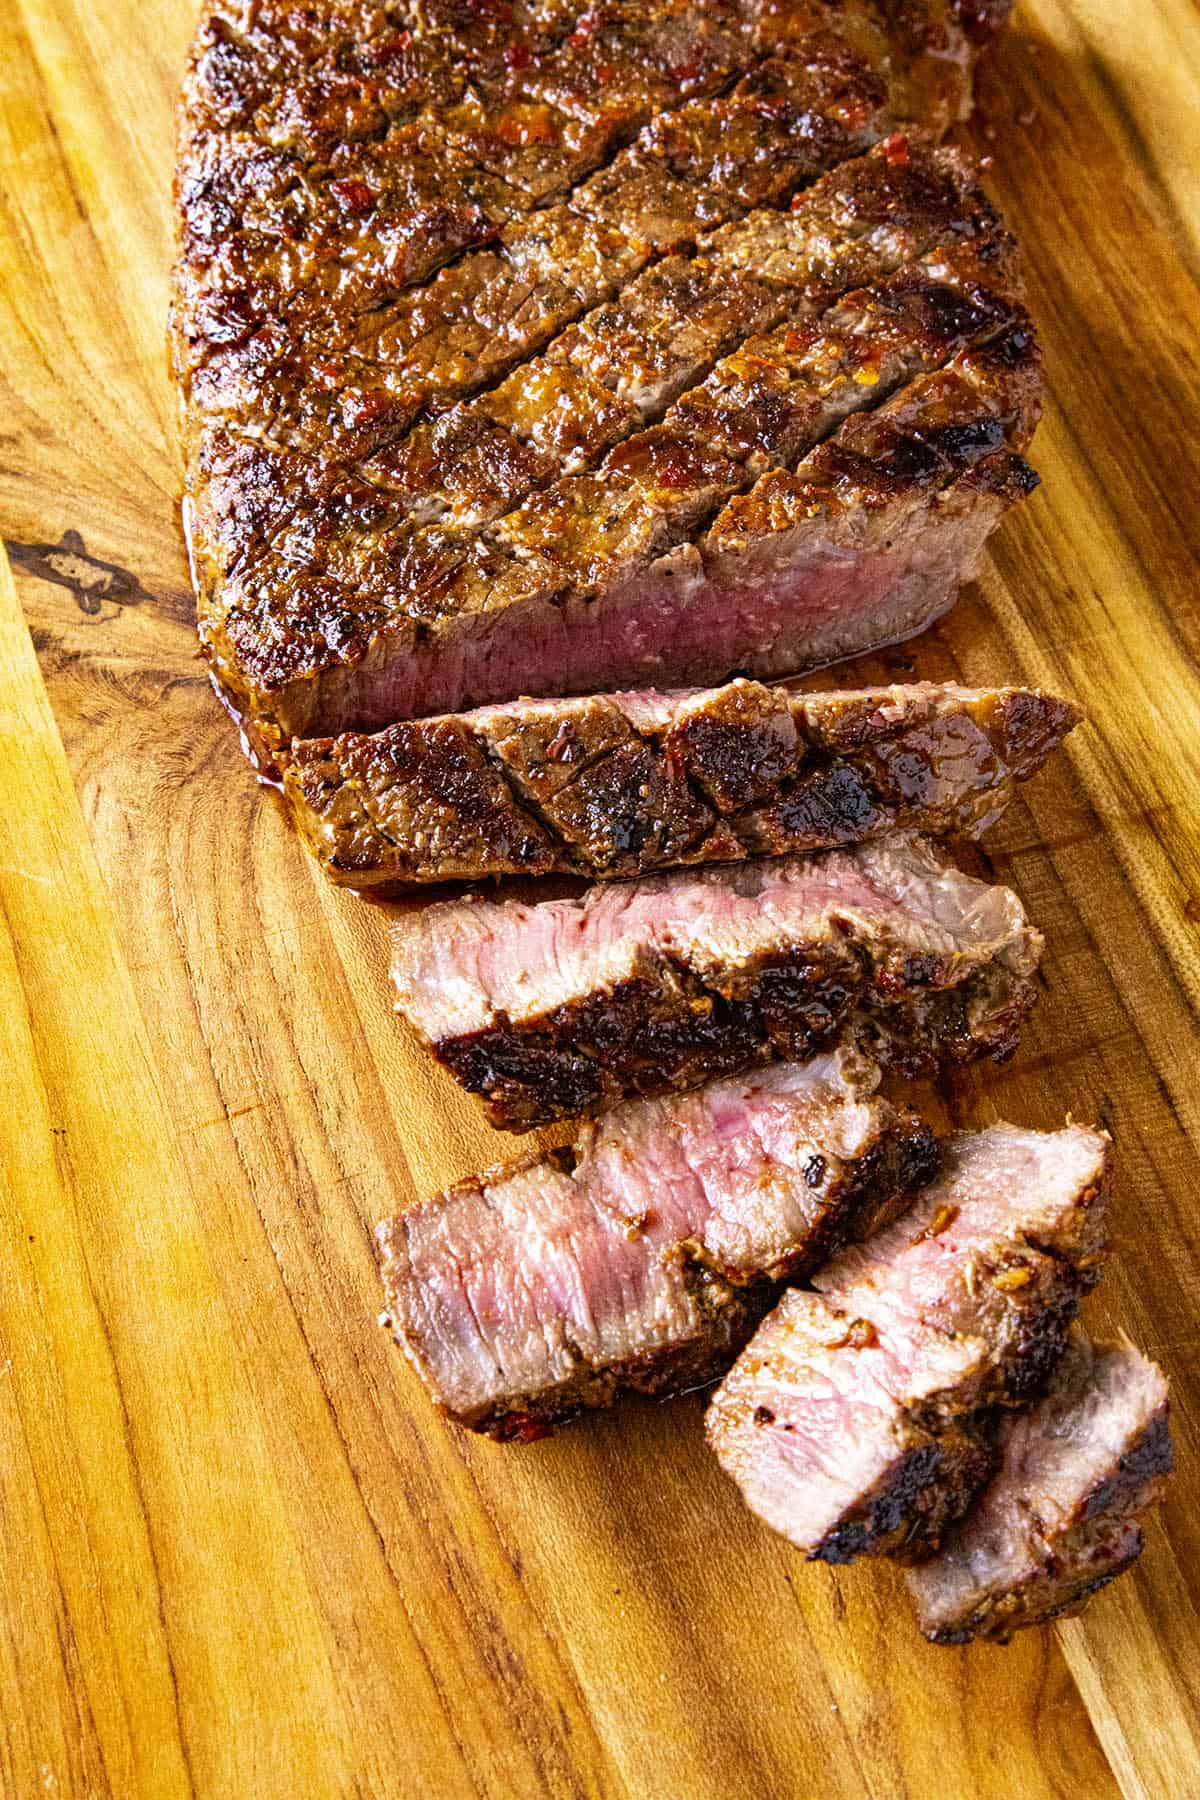 Sliced London broil on a platter, ready to serve